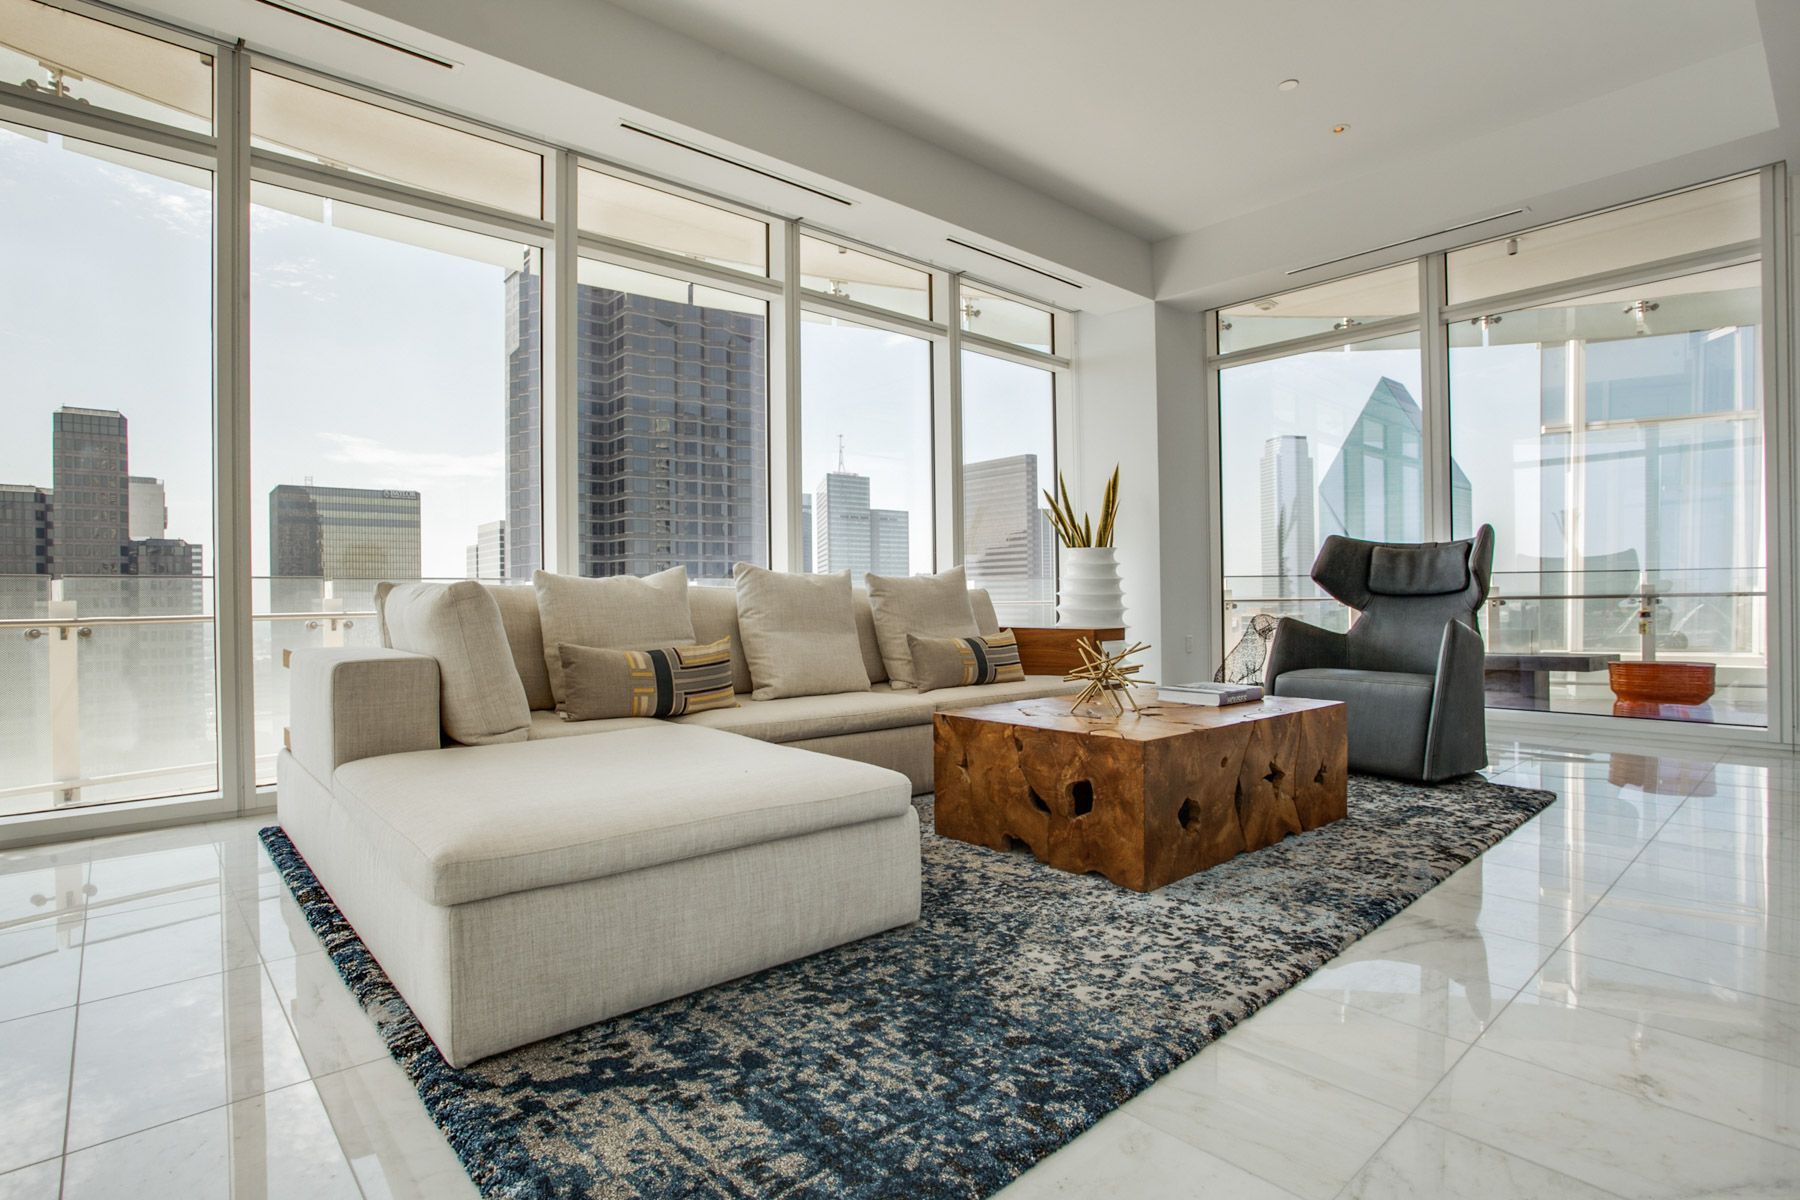 sales property at 1918 Olive Street 2602, Dallas